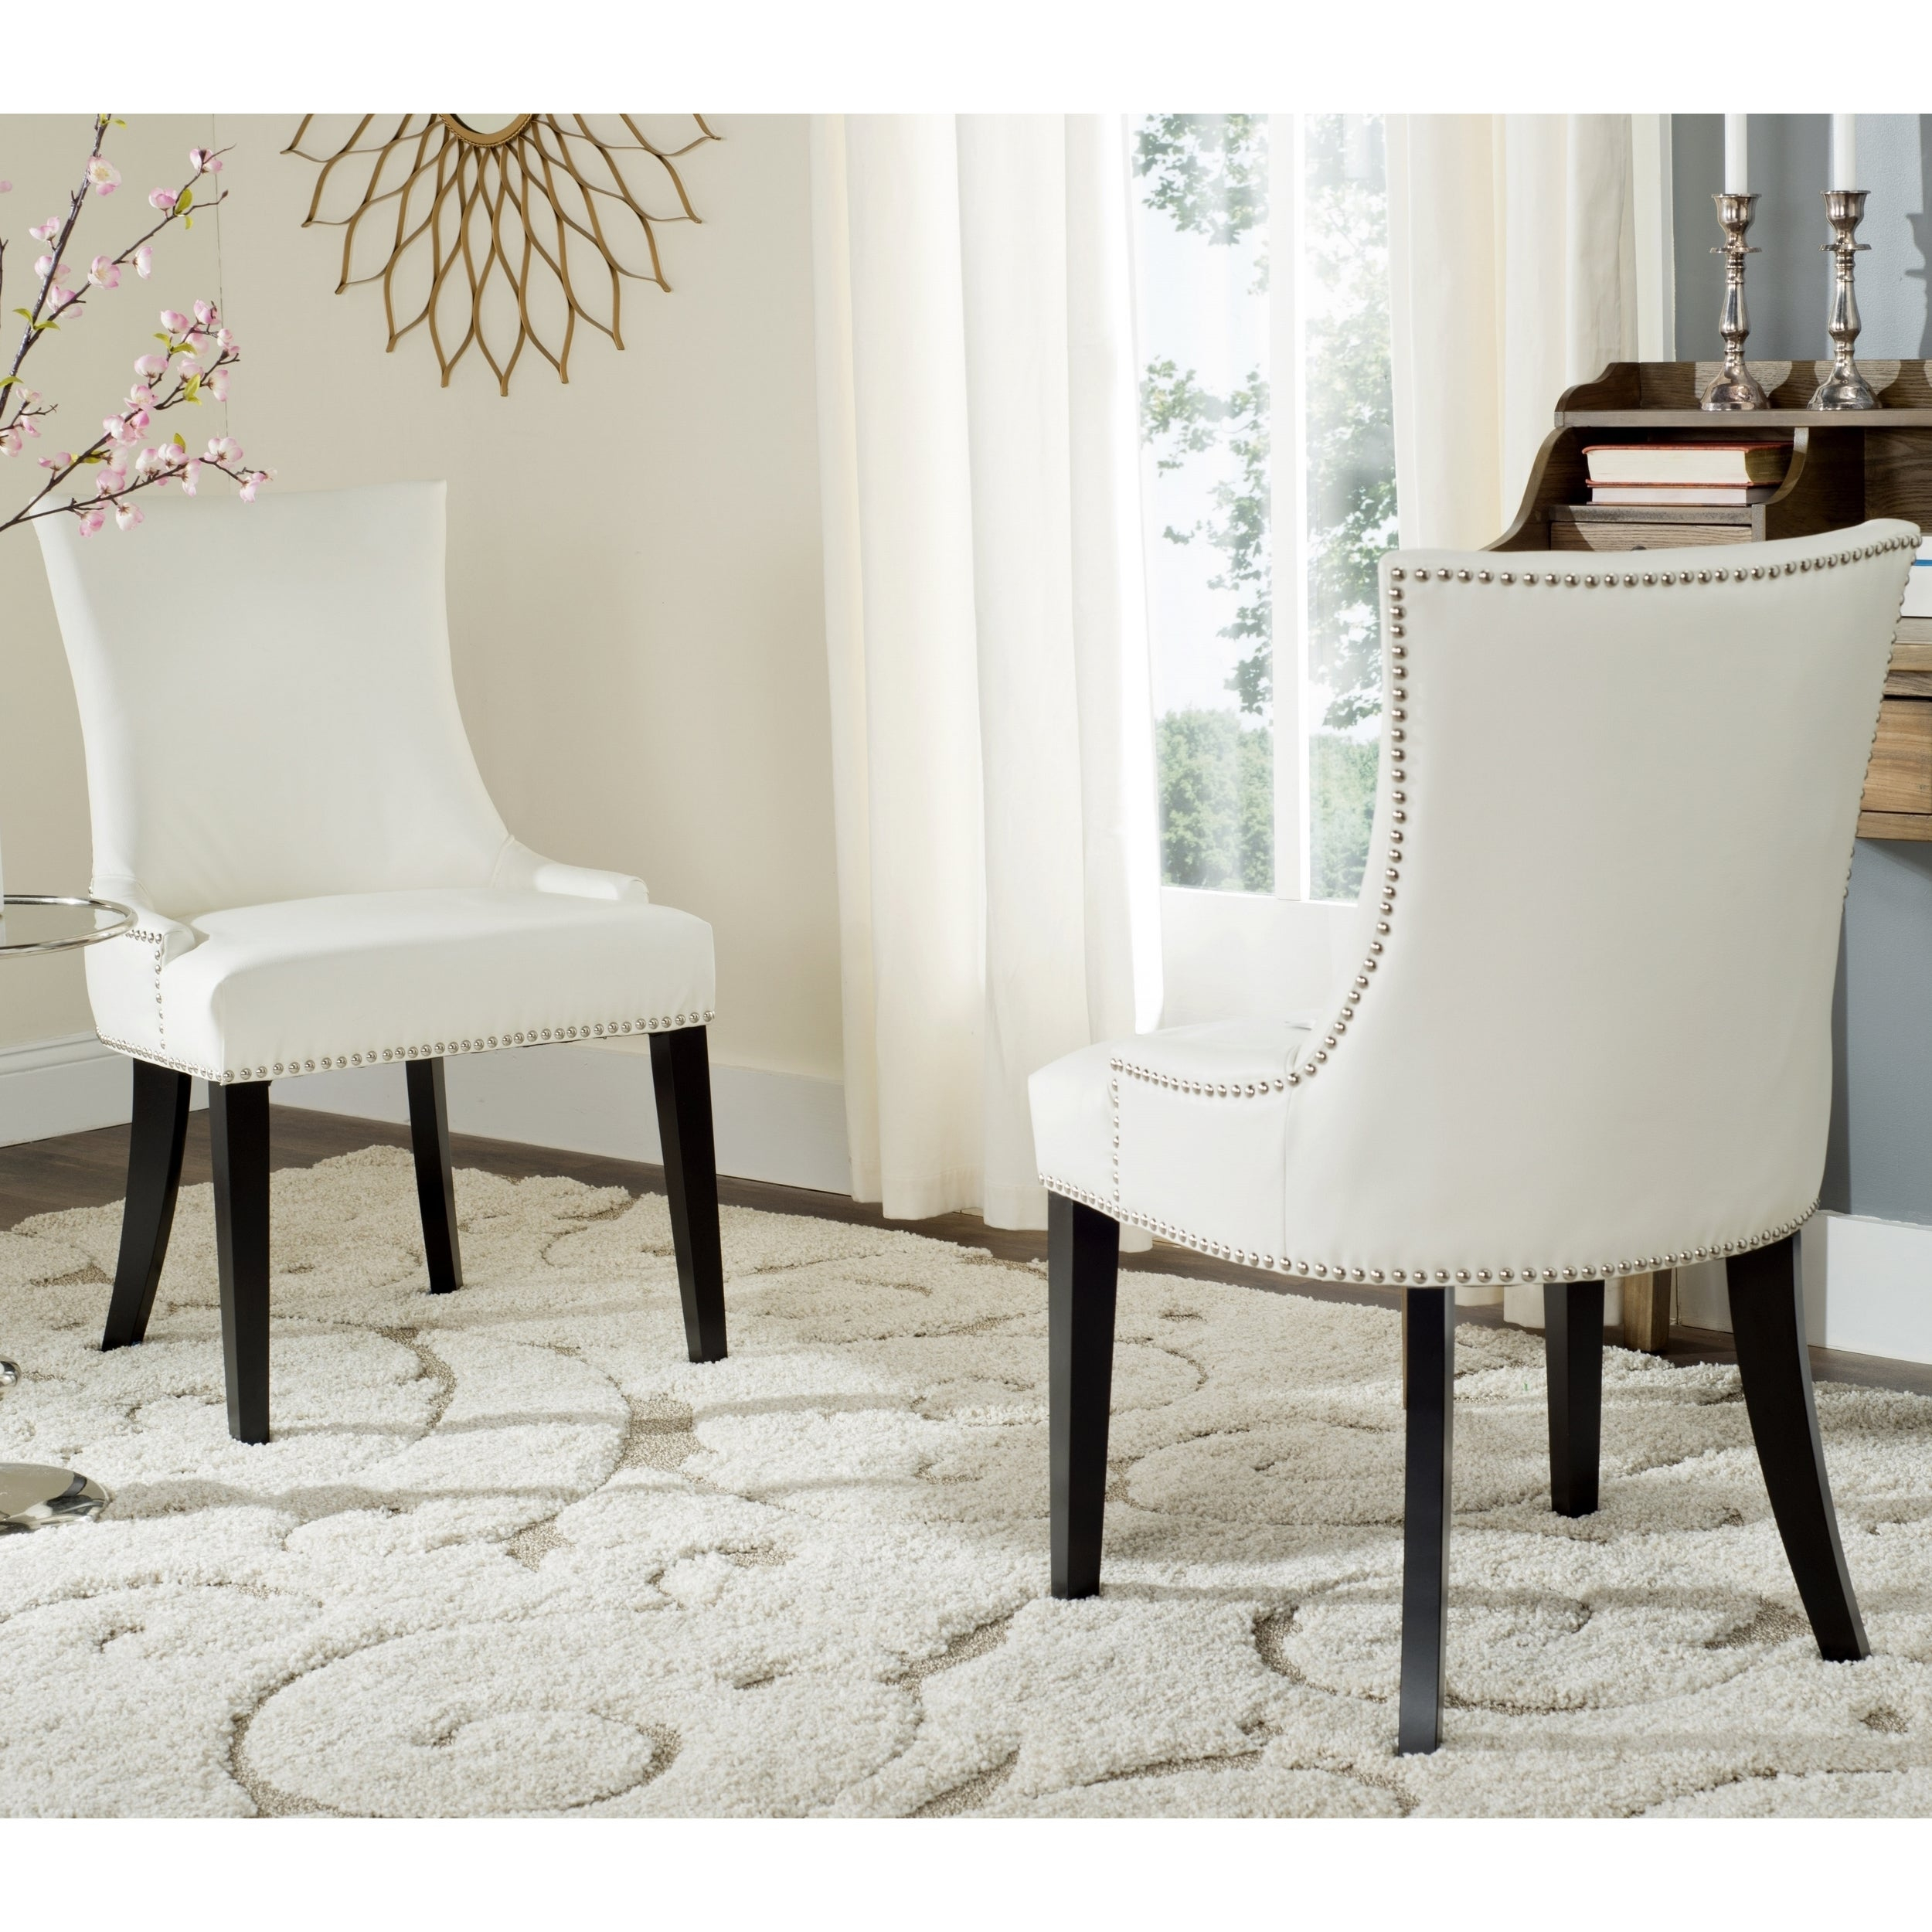 Shop Safavieh Dining Lester White Leather Dining Chairs Set Of 2